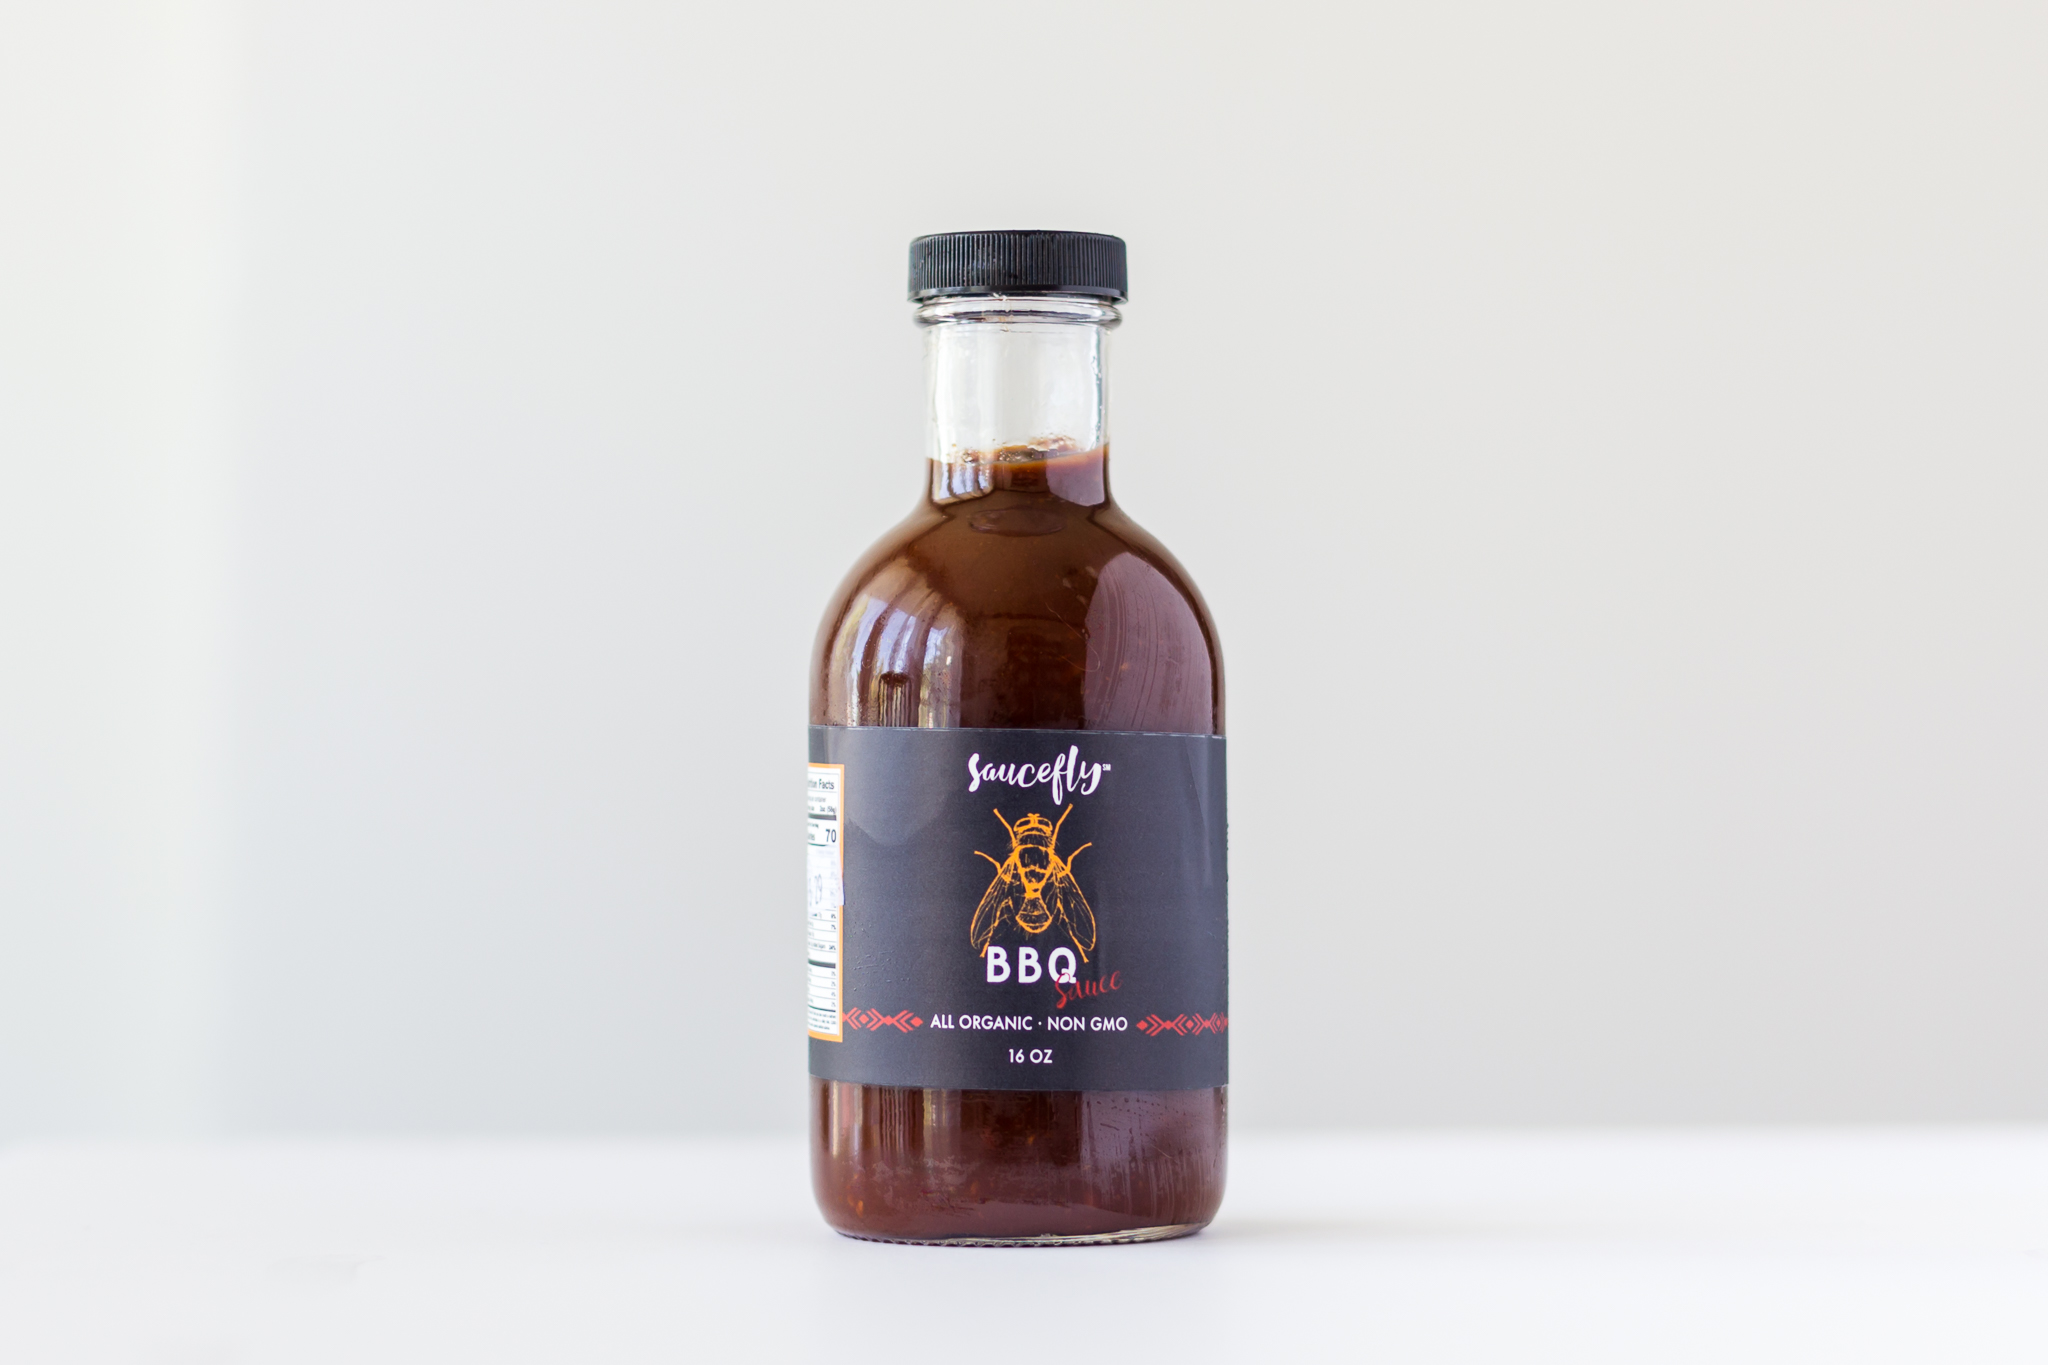 Saucefly Barbeque Sauce